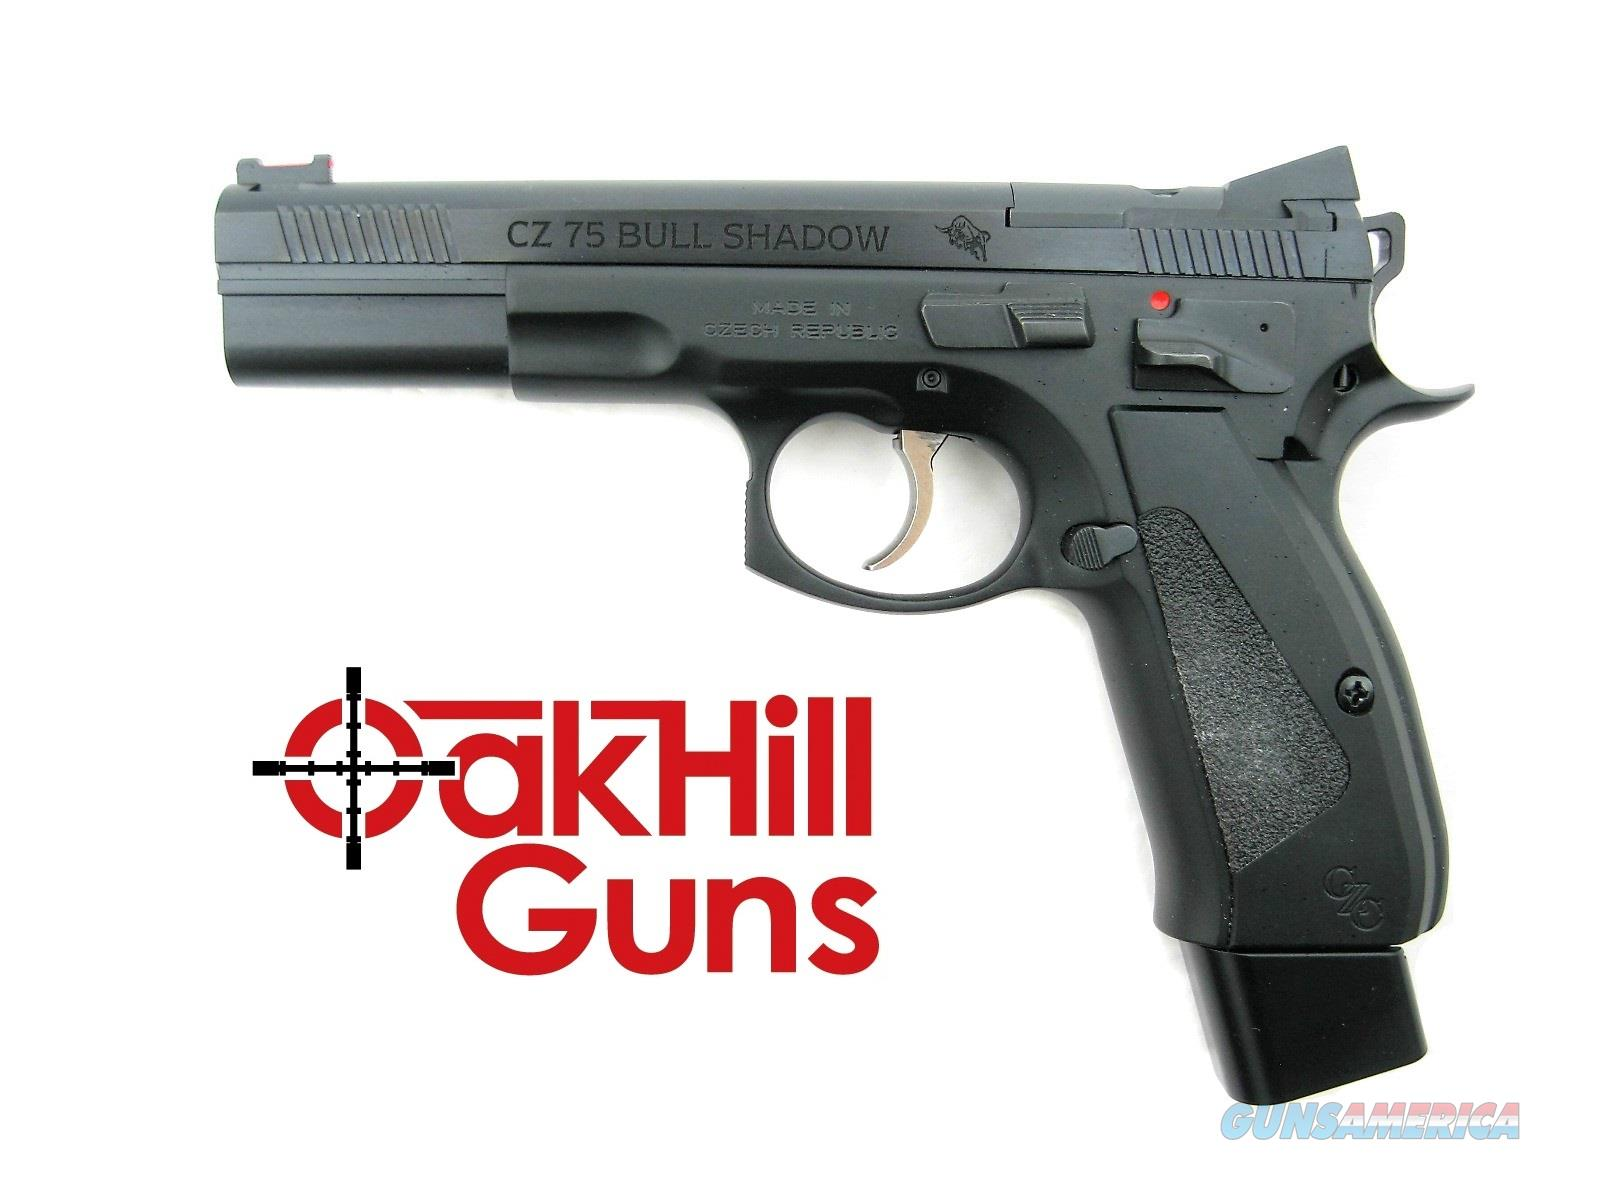 CZ 75 Bull Shadow Custom Carry Optics 9mm CZC Bull Barrel Optic Ready 20 Rd Mags 91725CO  *NEW*  Guns > Pistols > CZ Pistols